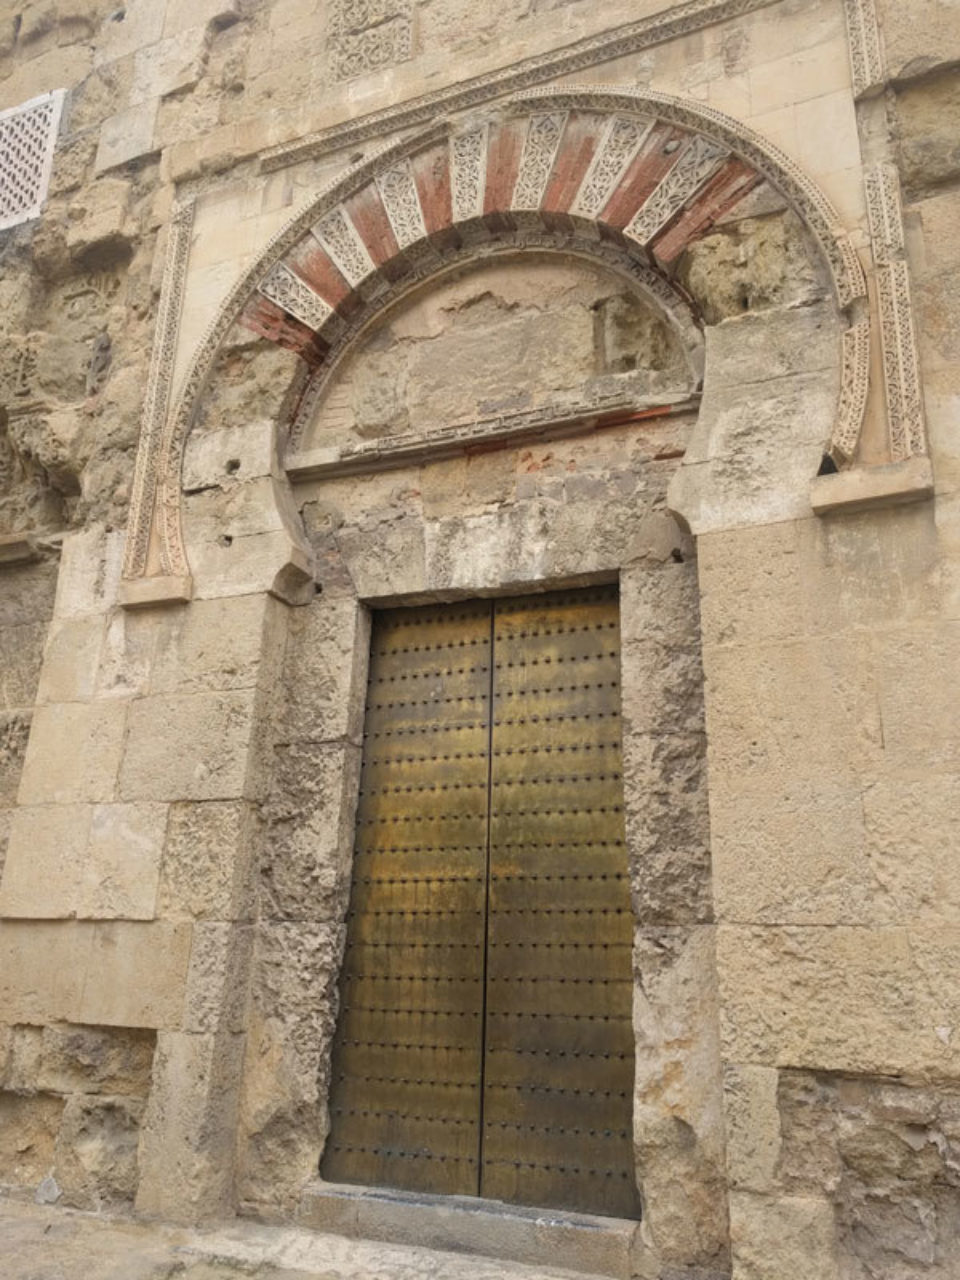 A doorway located in the outer walls of La Mezquita